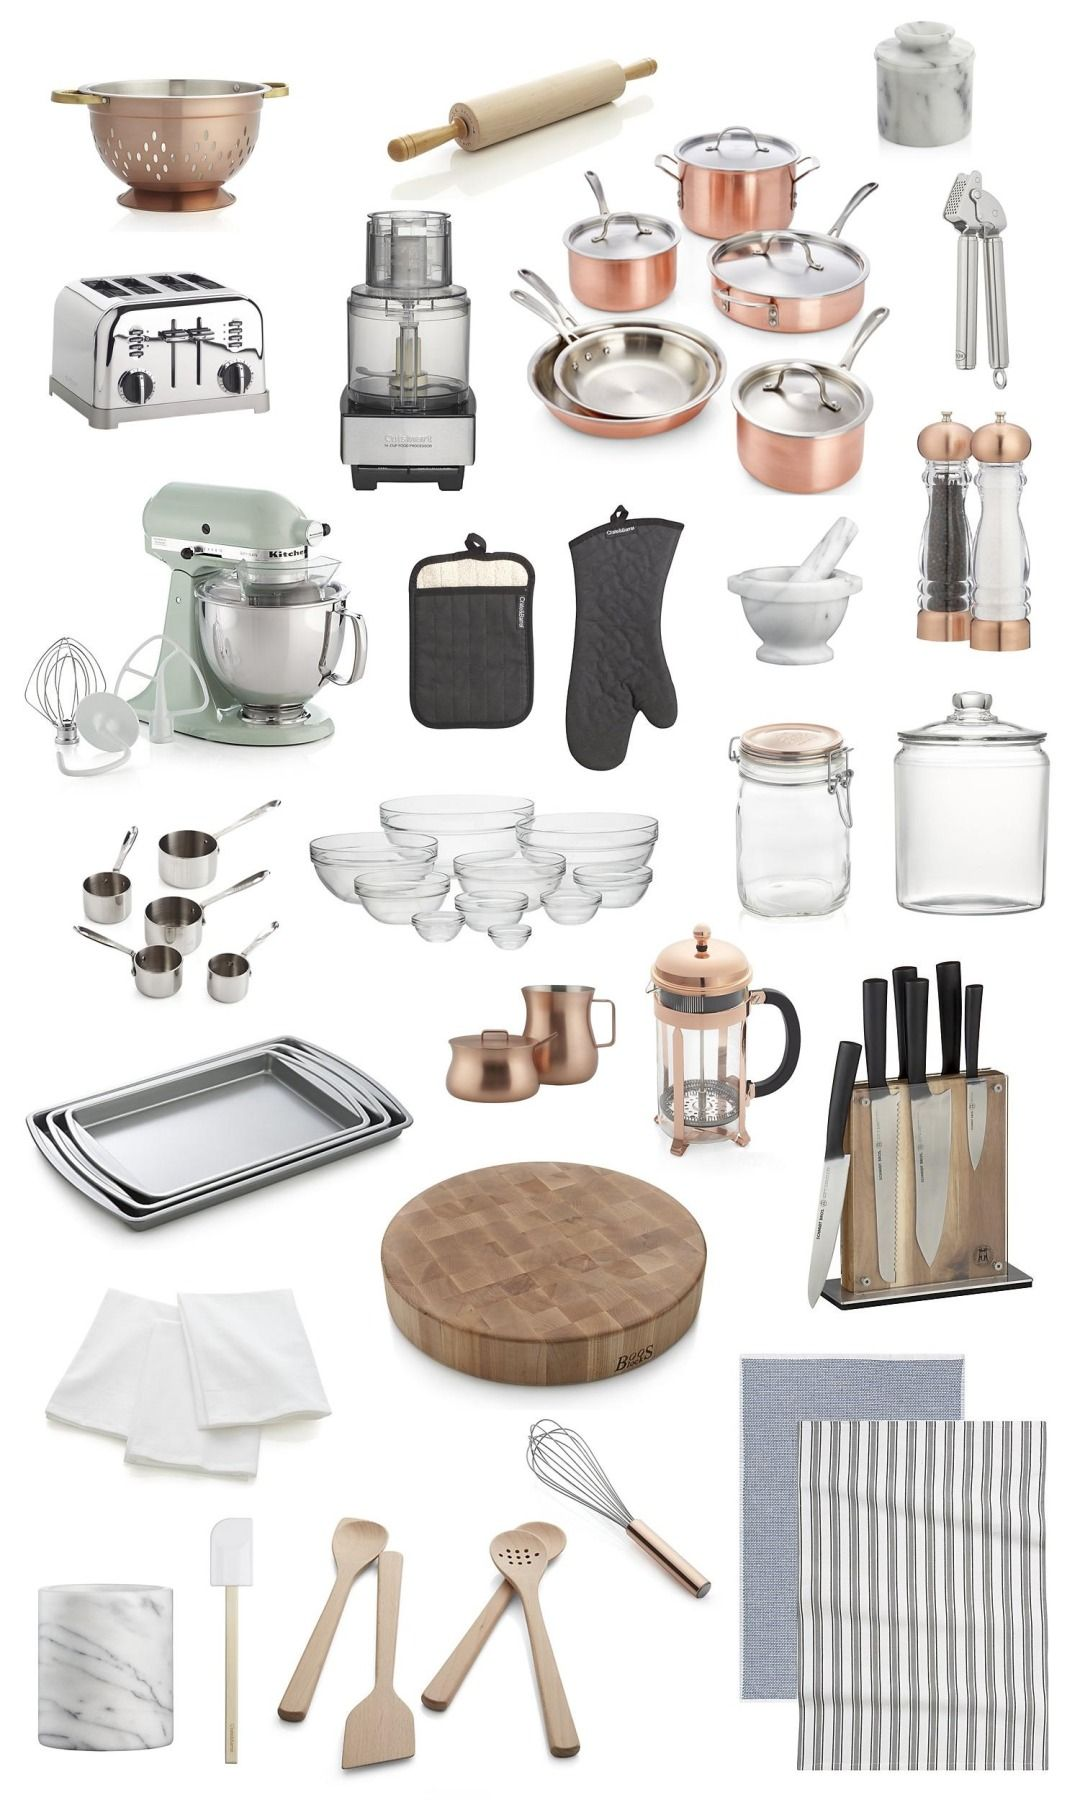 How To Set Up A Kitchen K I T C H E N Kitchen Decor